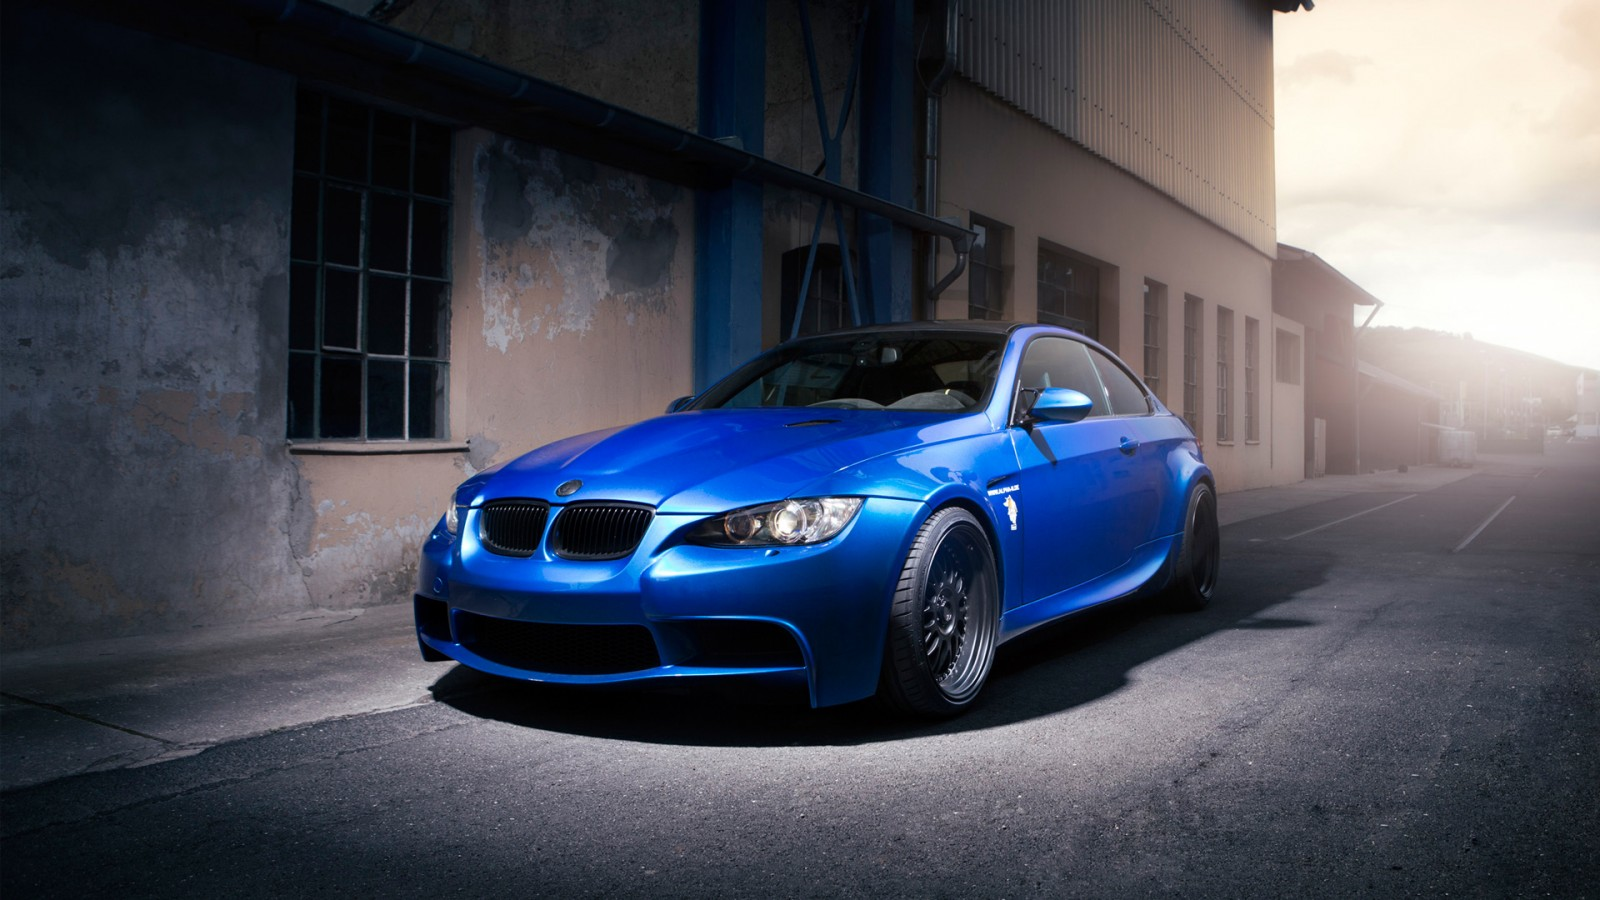 Windows 10 Wallpaper Hd Bmw M3 Bt92 By Alpha N Performance 2013 Wallpaper Hd Car